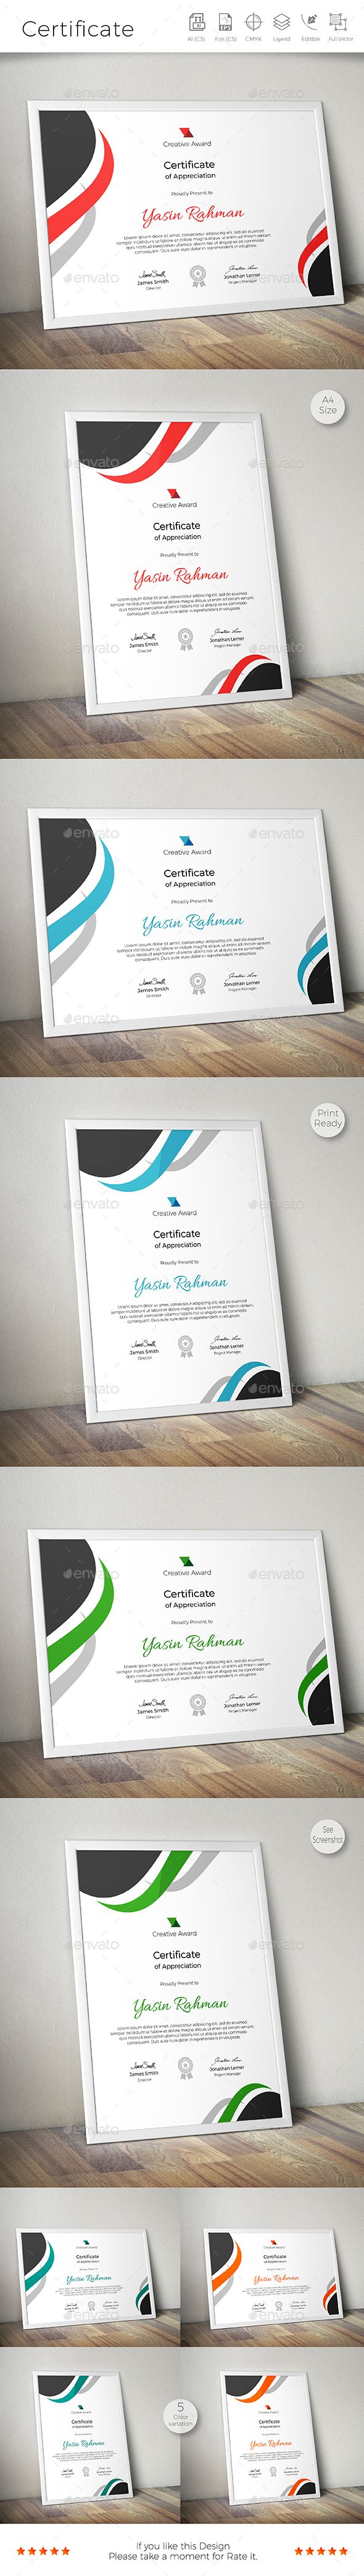 Certificate Template Vector EPS, AI Illustrator. Download here: http://graphicriver.net/item/certificate/16682109?ref=ksioks